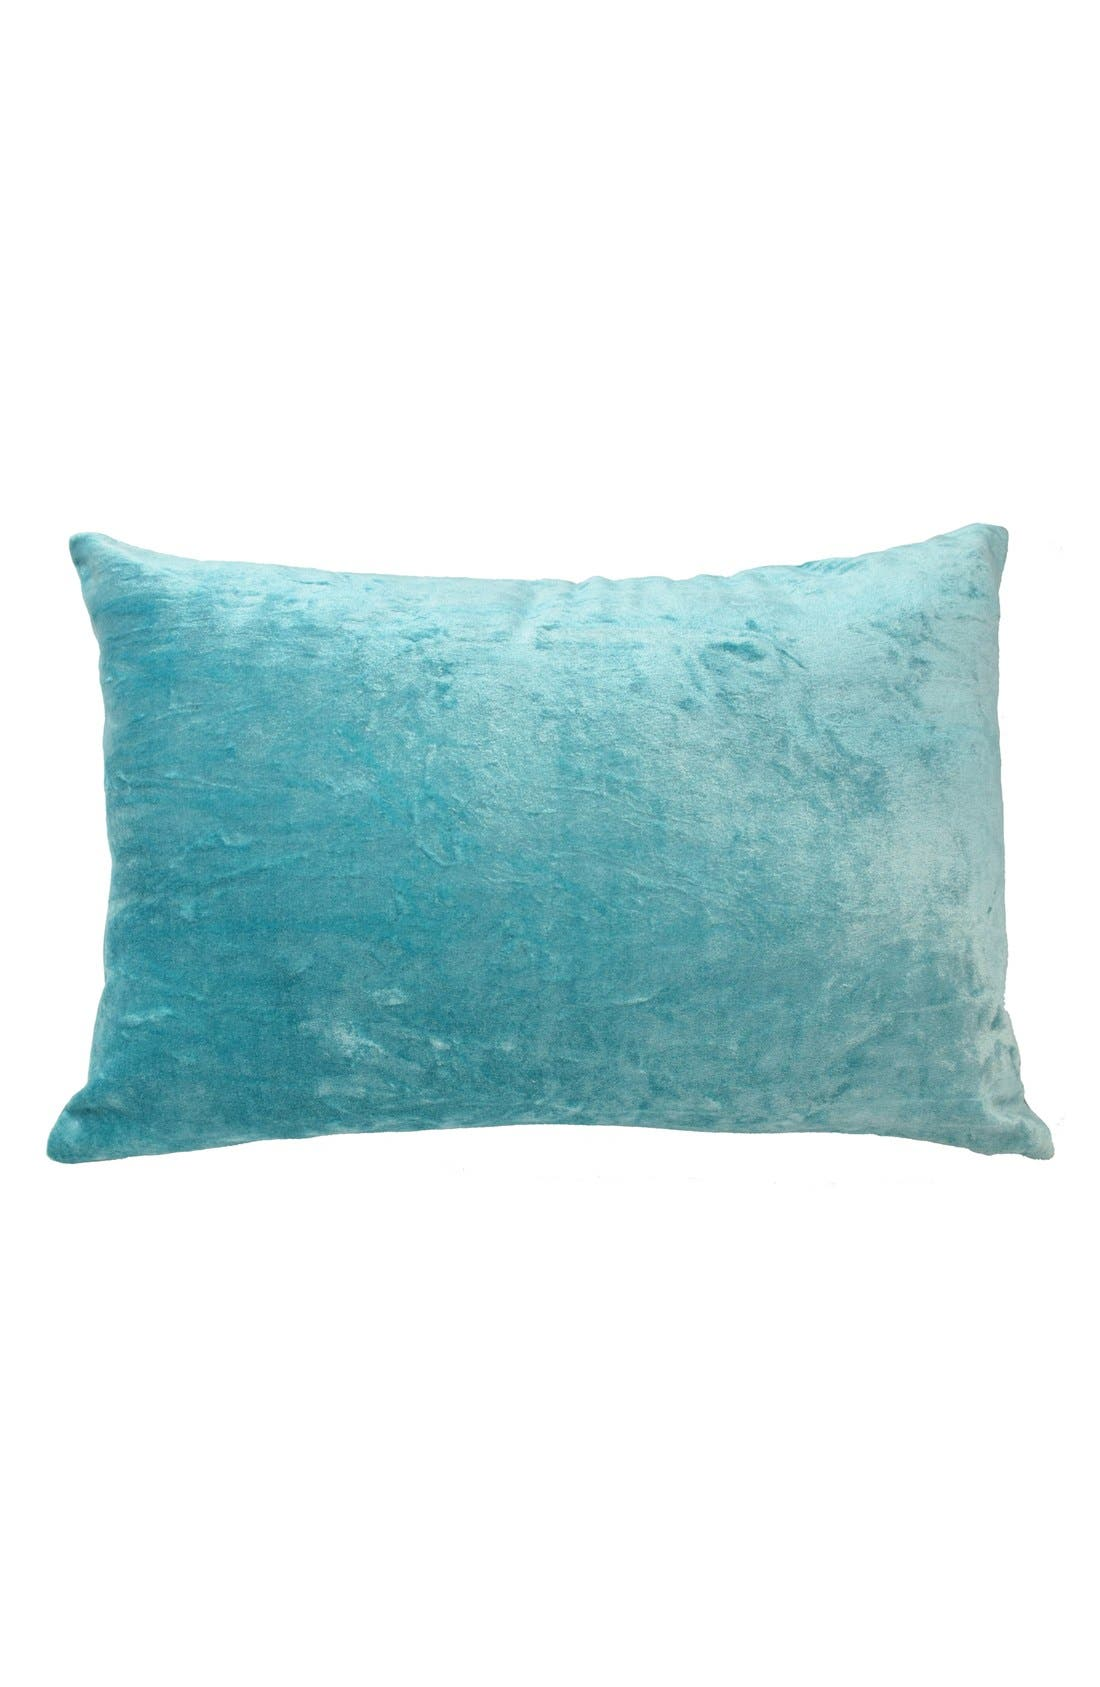 Alternate Image 1 Selected - Blissliving Home 'Feliz' Pillow